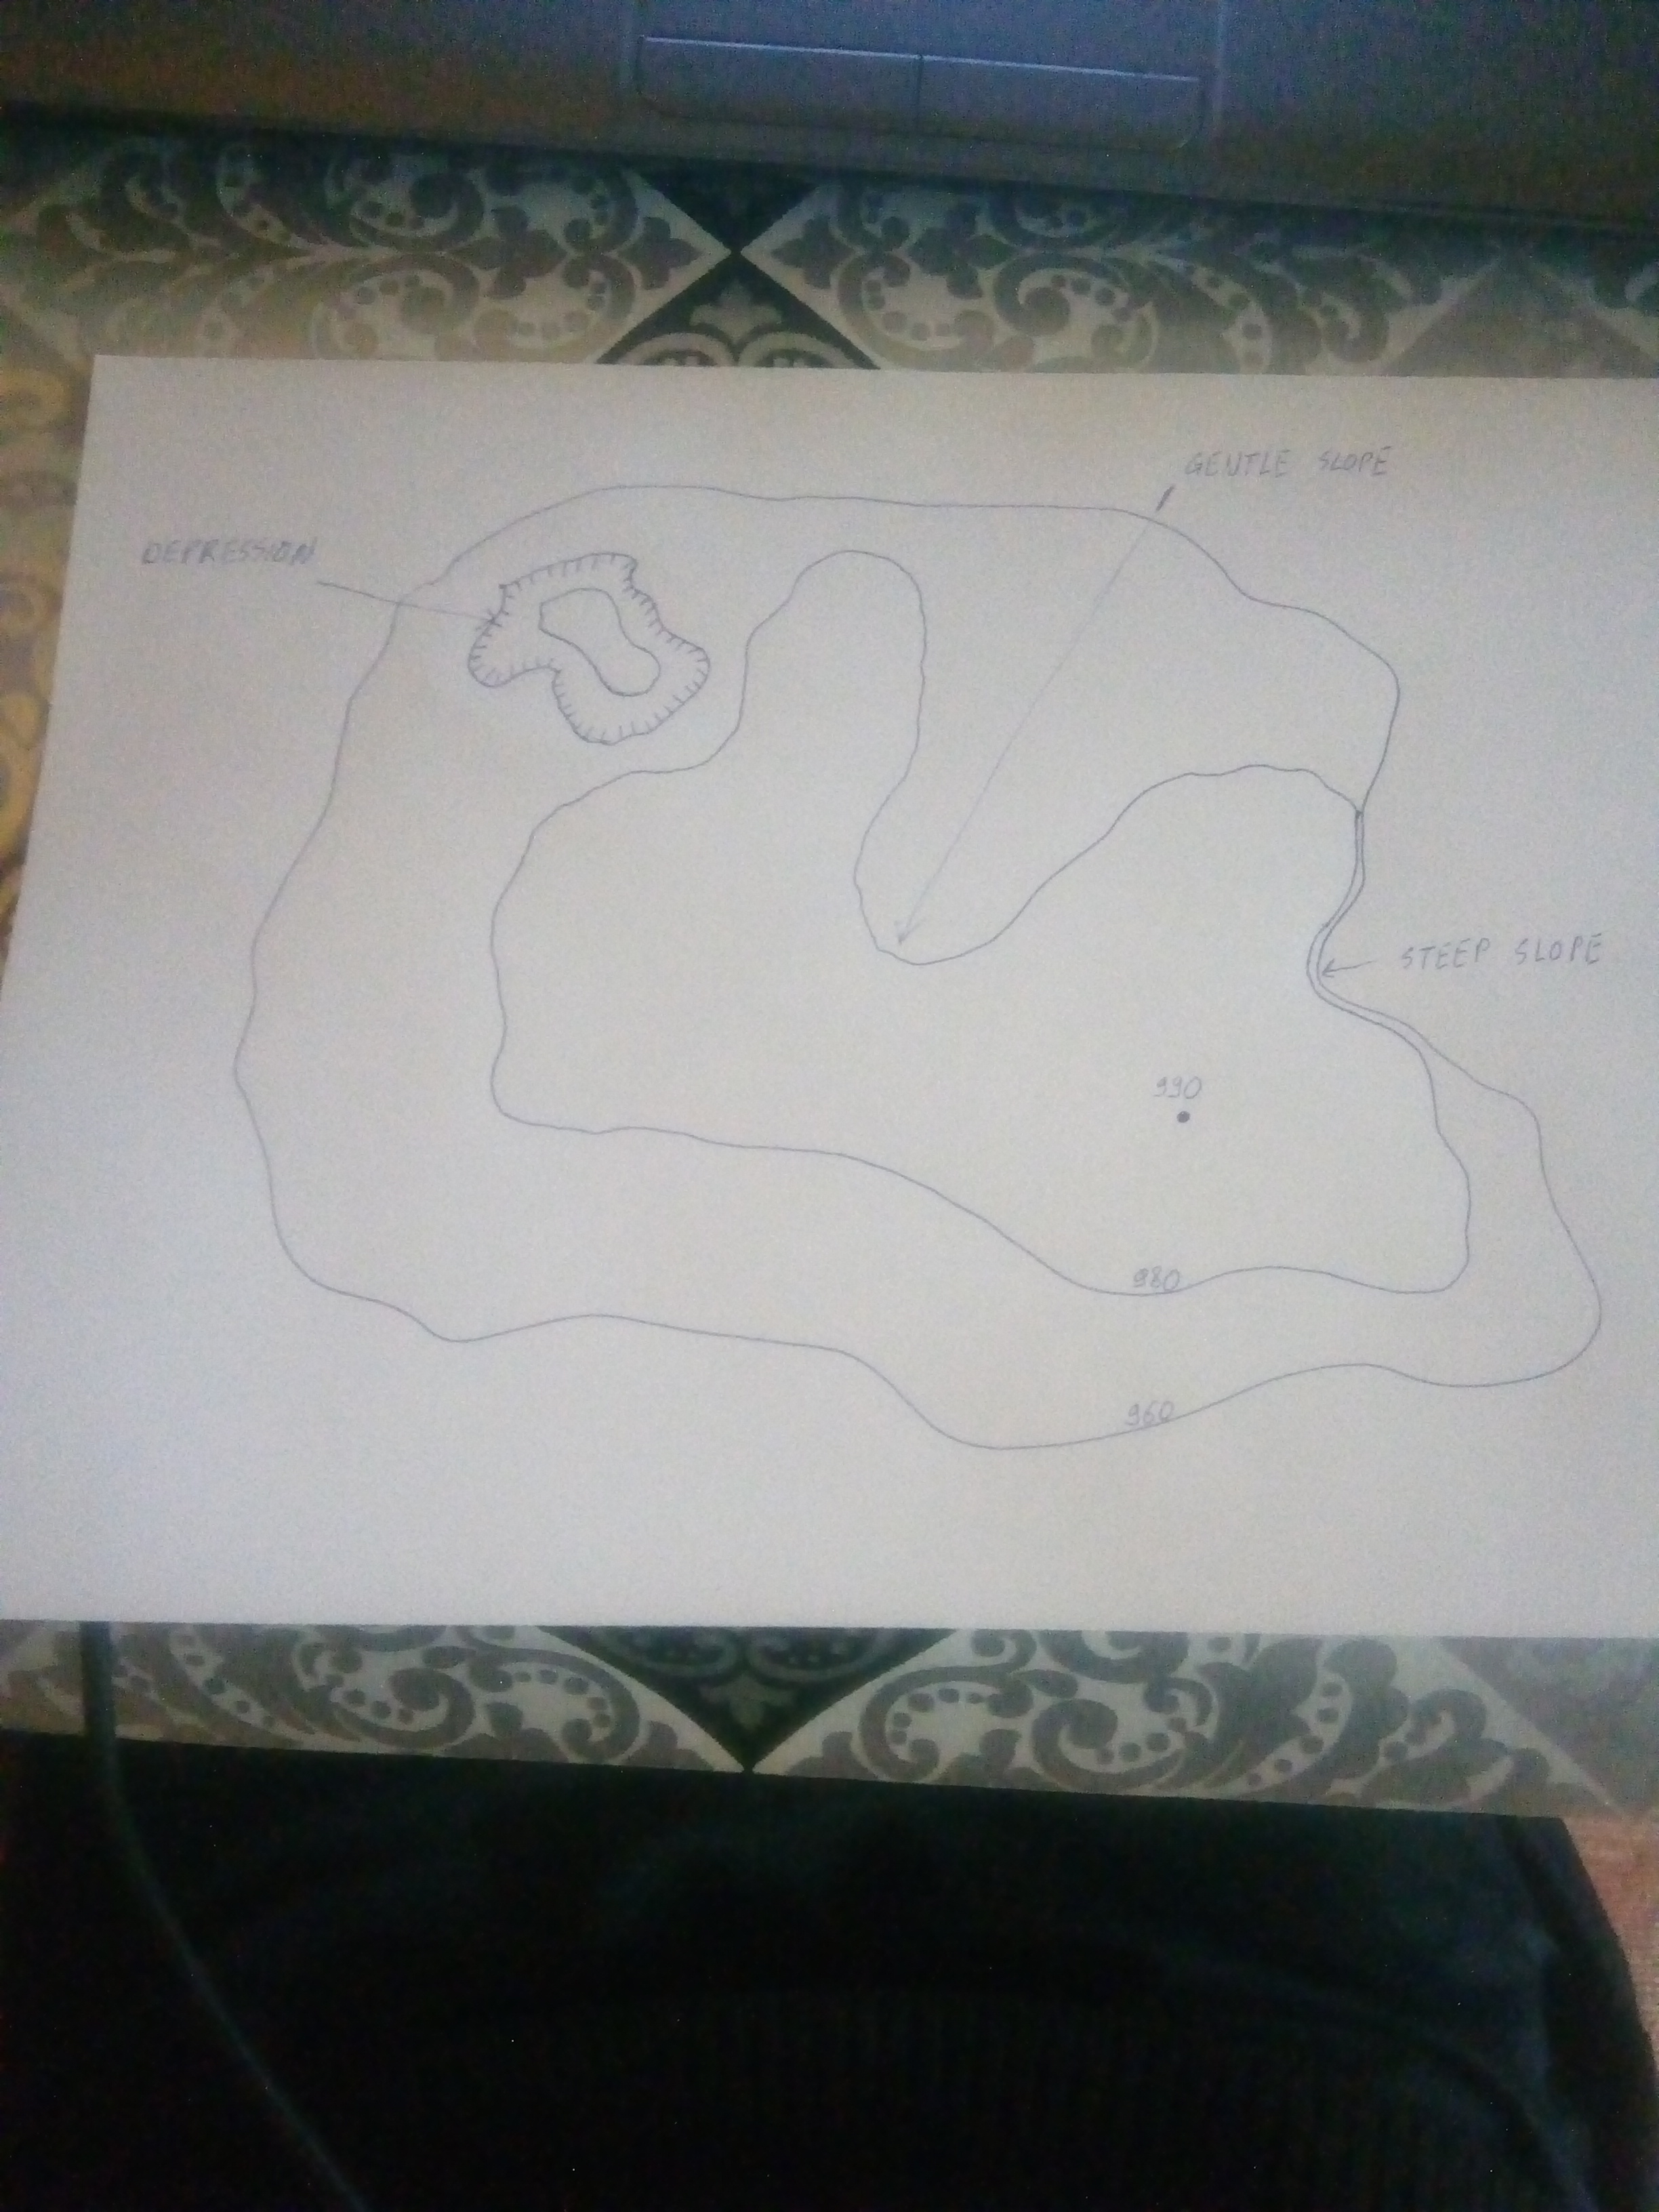 3 Draw A Topographic Map That Displays The Following